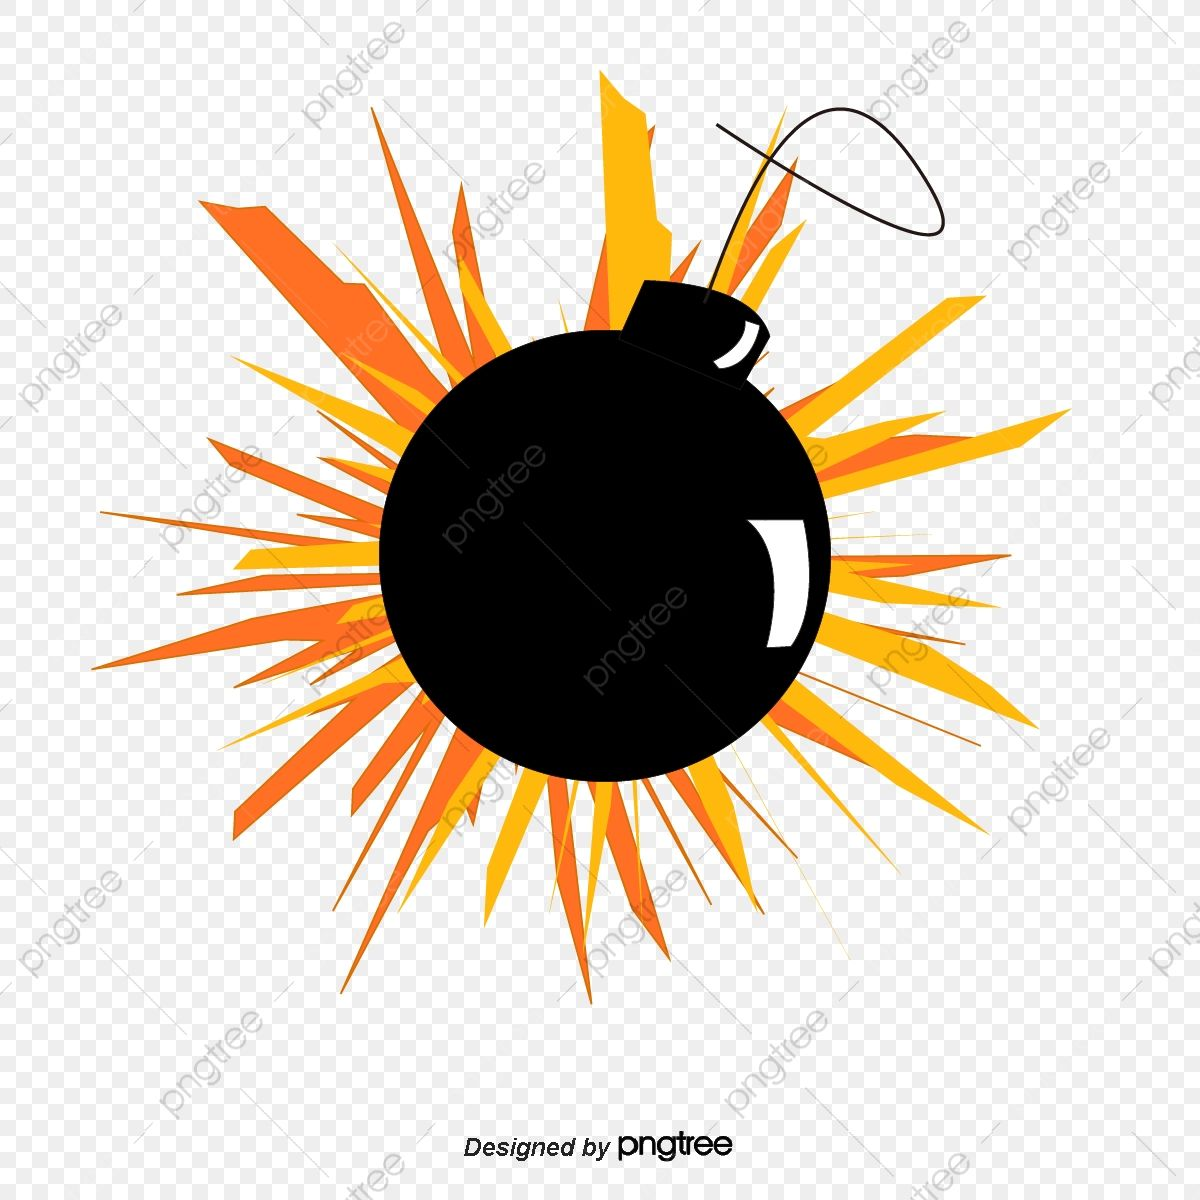 Bomb Explosion Hand Painted Cartoon Bomb Explosion Png And Vector With Transparent Background For Free Download Bombs Hand Painted Transparent Background